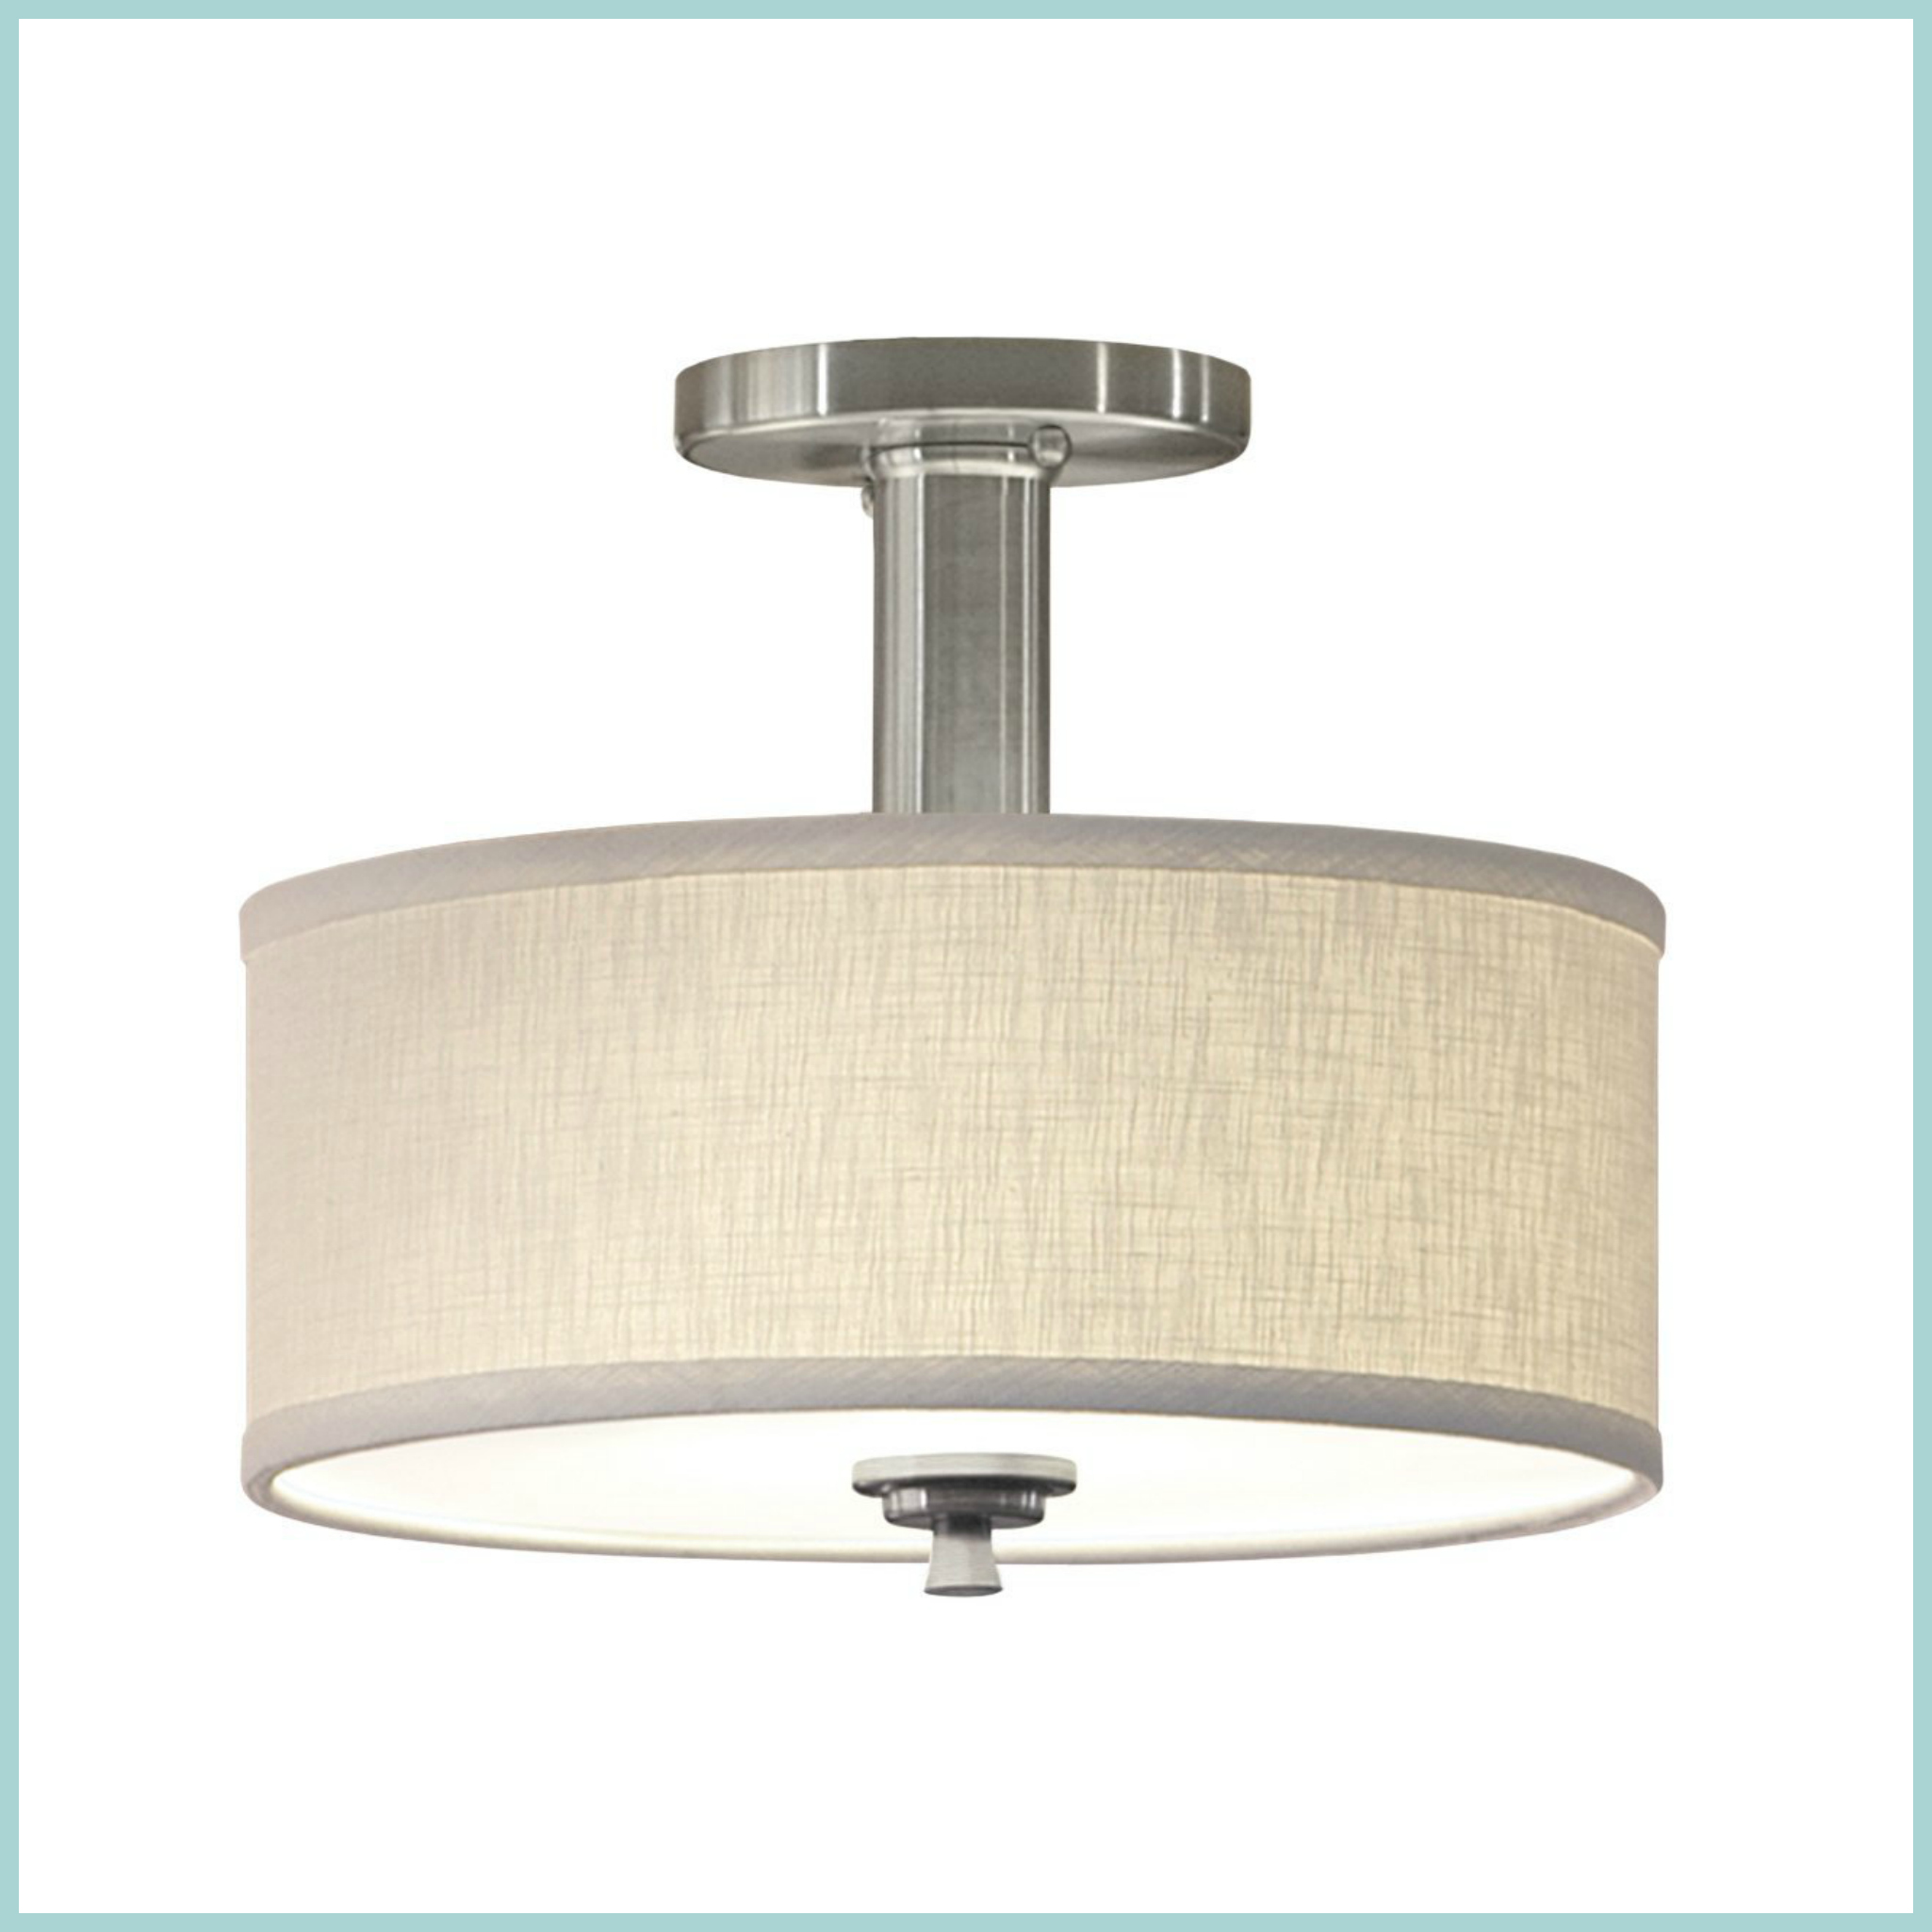 These gorgeous high style ceiling lights will dress up a low ceiling now you know you dont have to have high ceilings to have high style lights are you convinced i know i am and i gotta tell you guys ill be swapping aloadofball Images